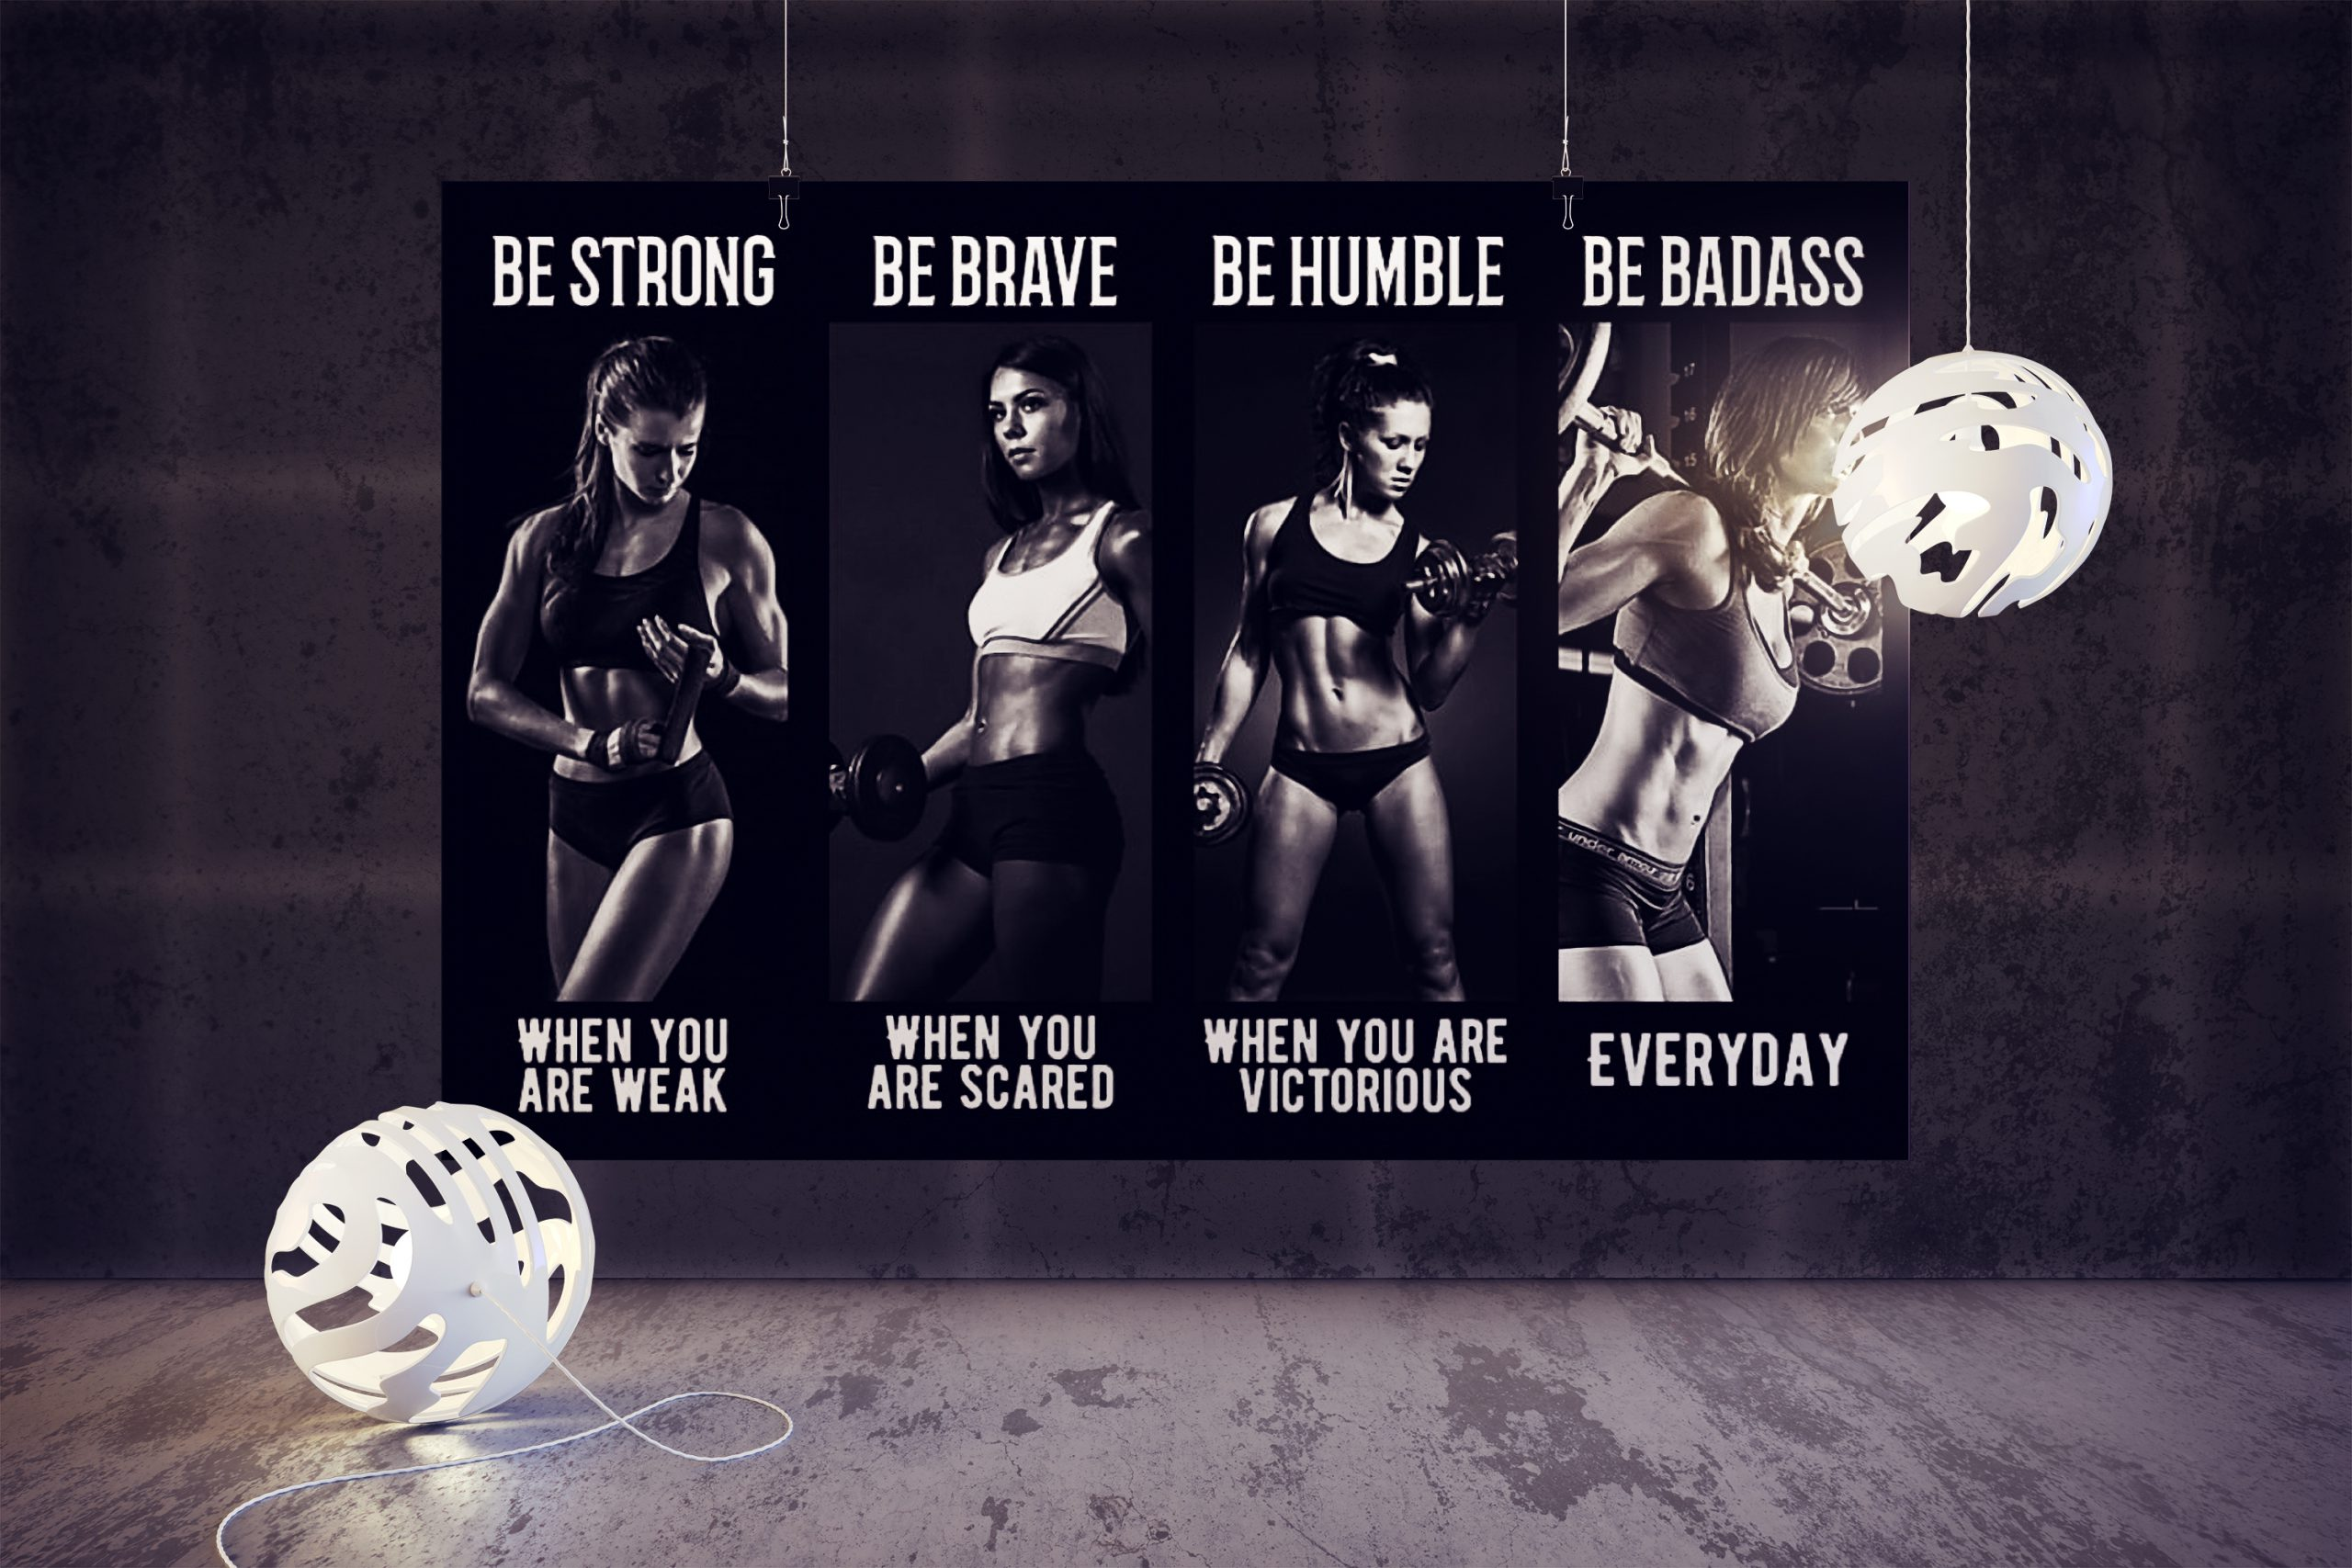 Bodybuilding Girl be strong be brave be humble be badass poster 2